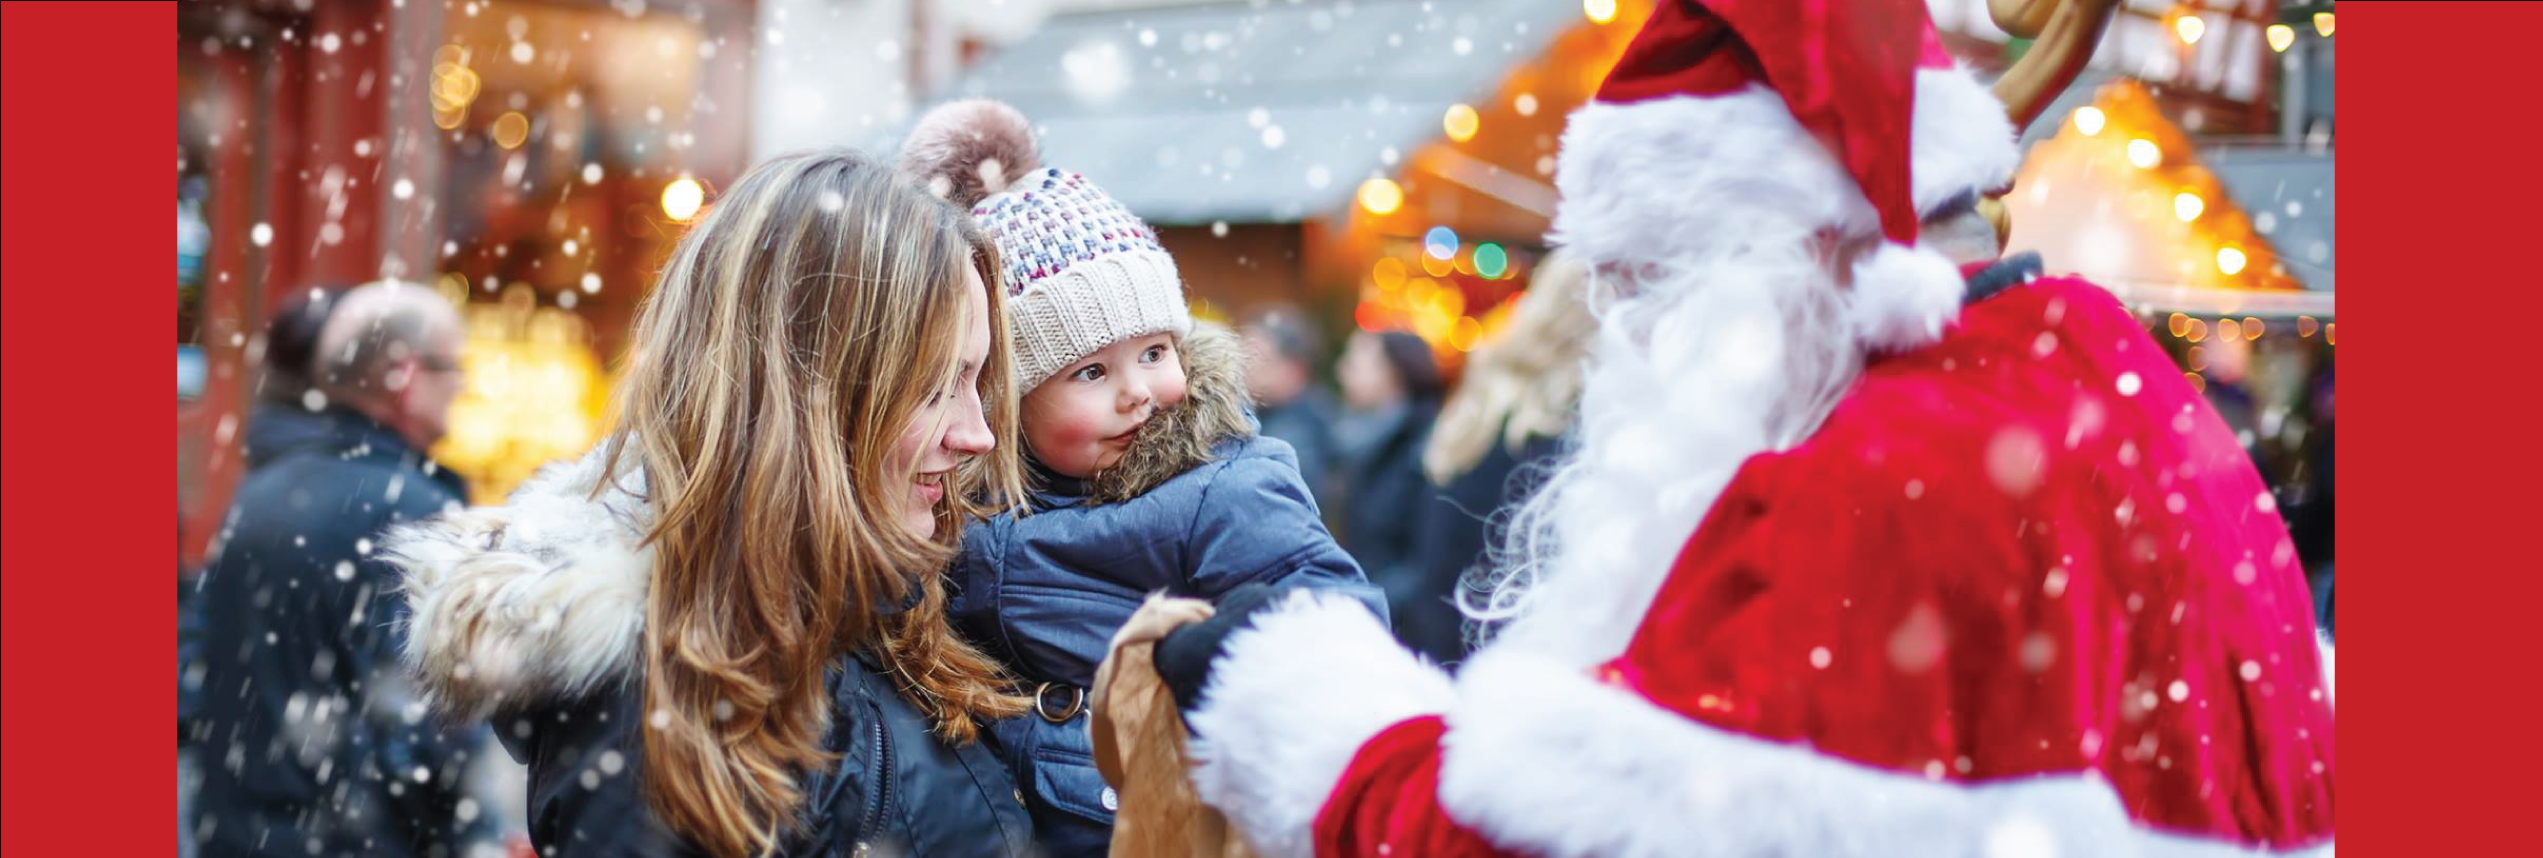 Christmas fair 14 December 2019 Groningen